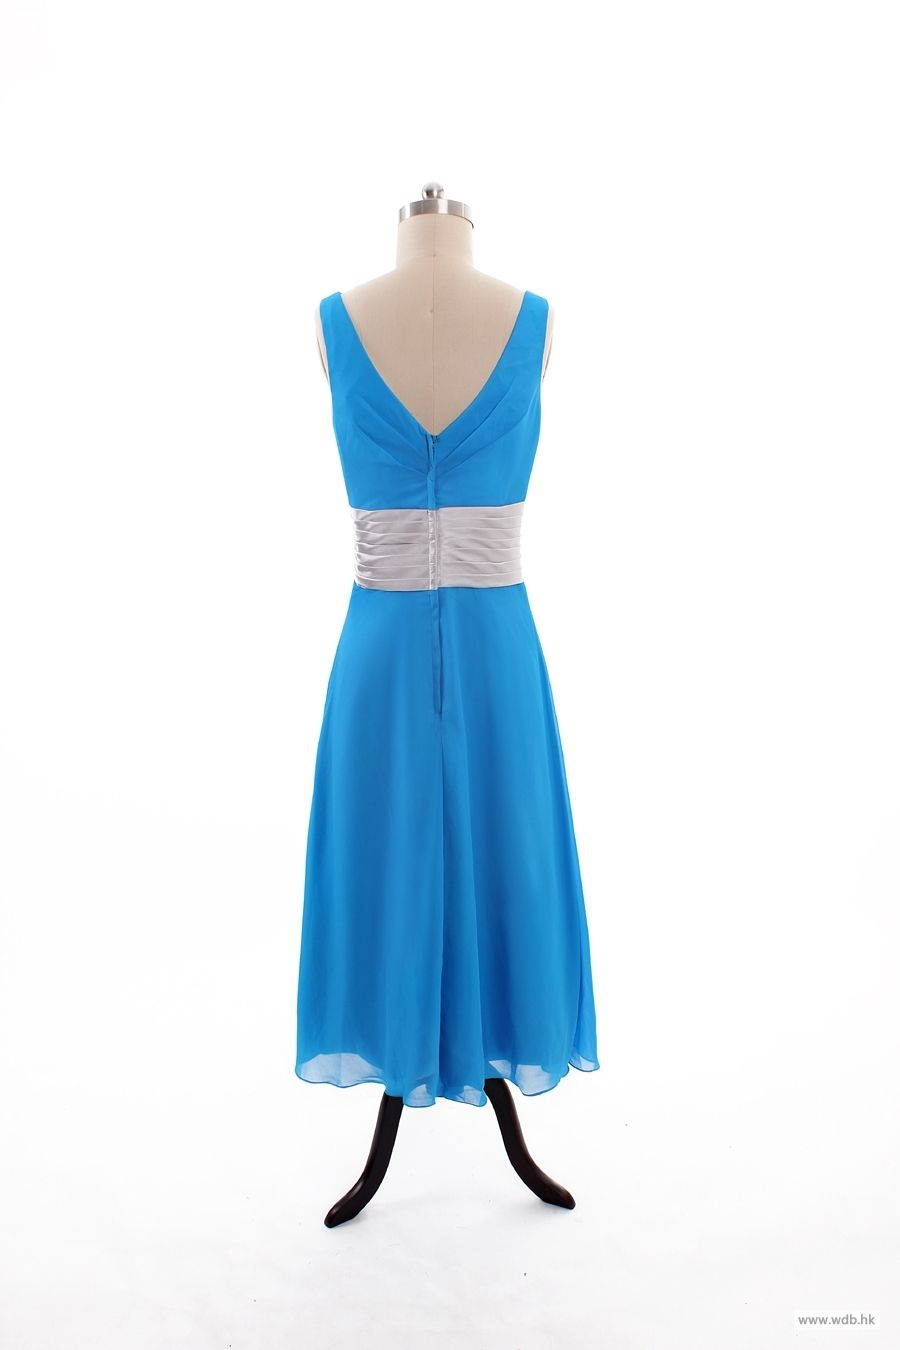 barn wedding V-neck A-line floor-length chiffon bridesmaid dress $127.8